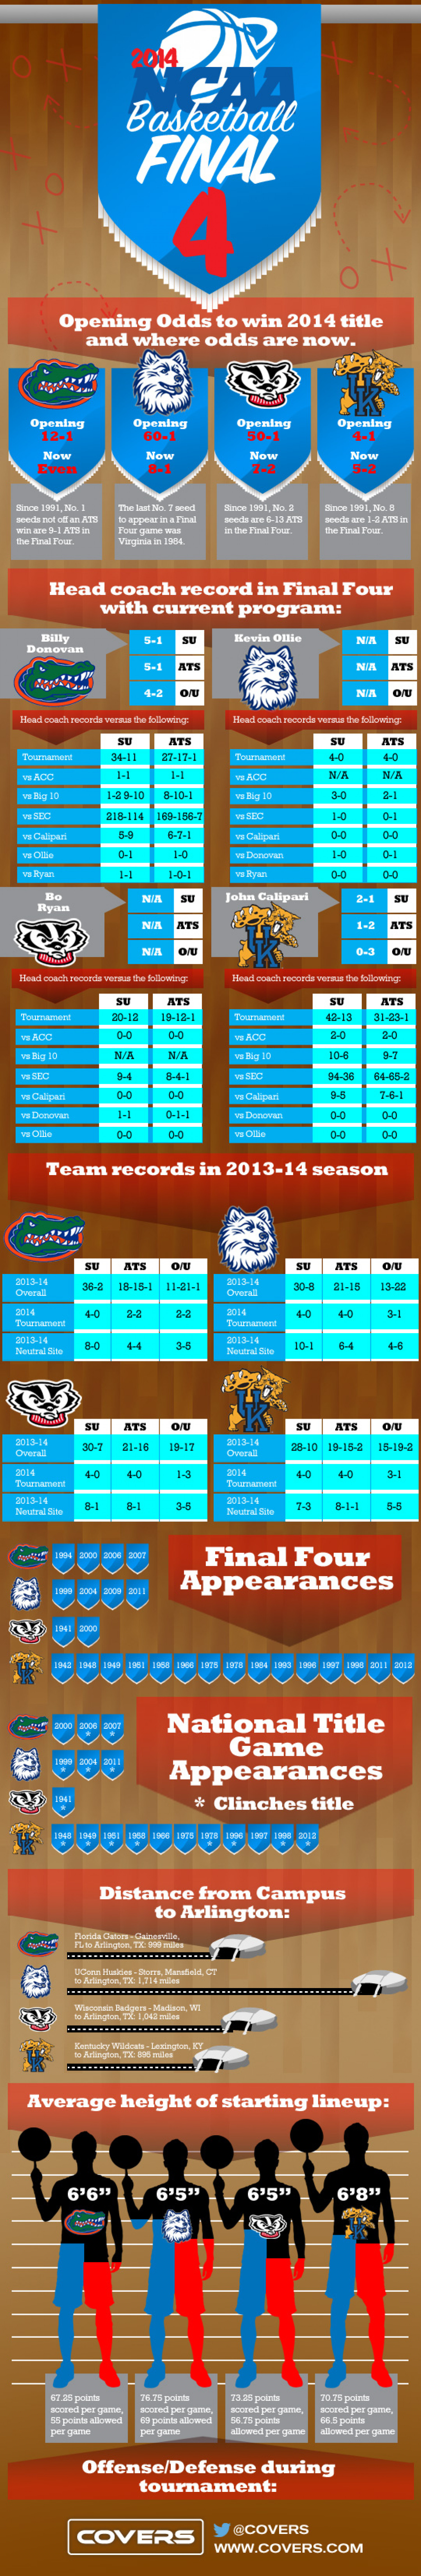 2014 NCAA Basketball Final 4 Infographic